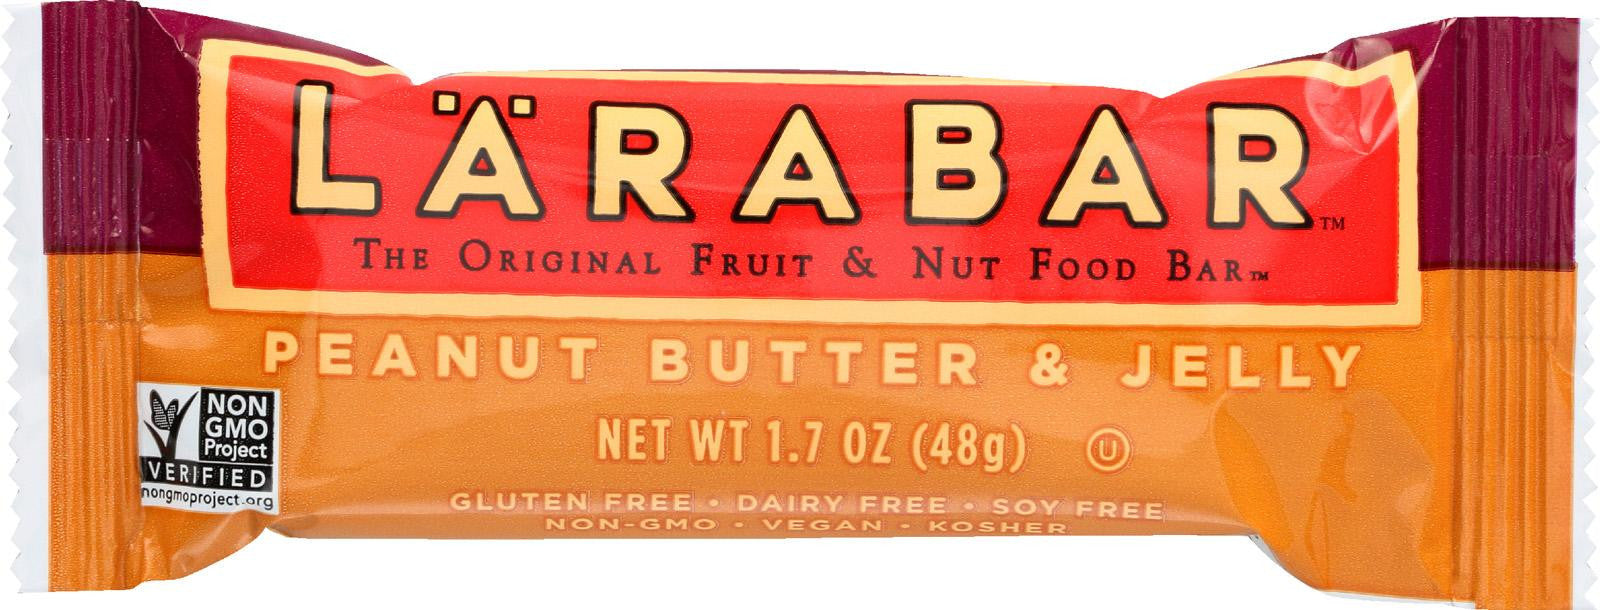 LaraBar - Peanut Butter and Jelly